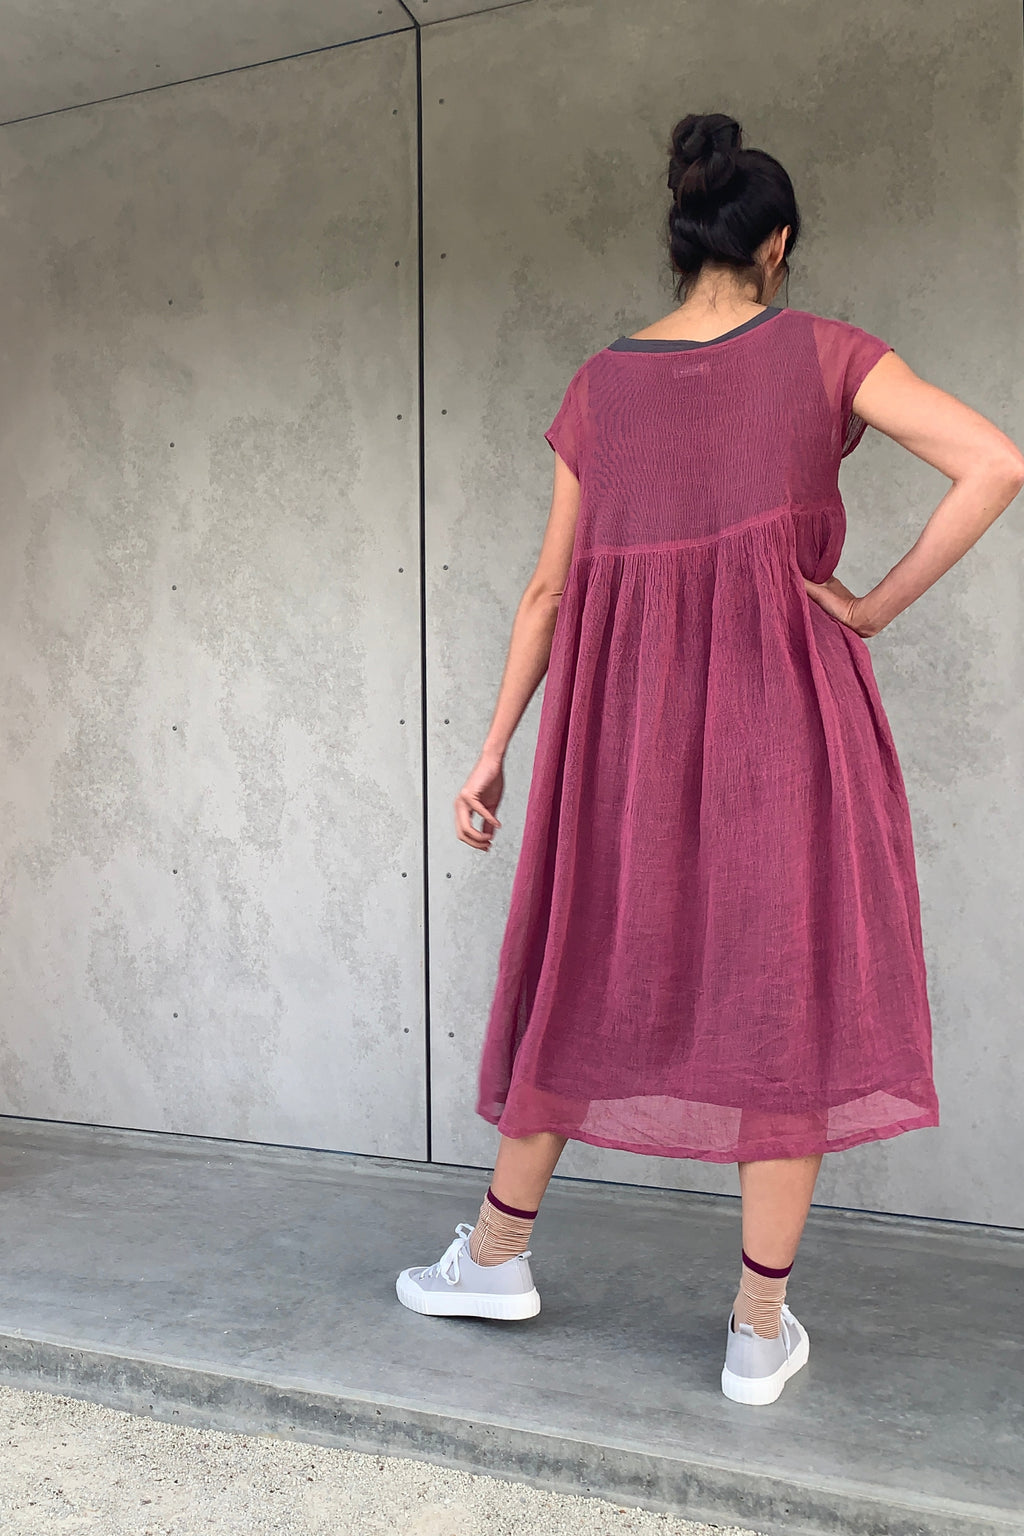 ban inoue : karamiori linen dress in rose